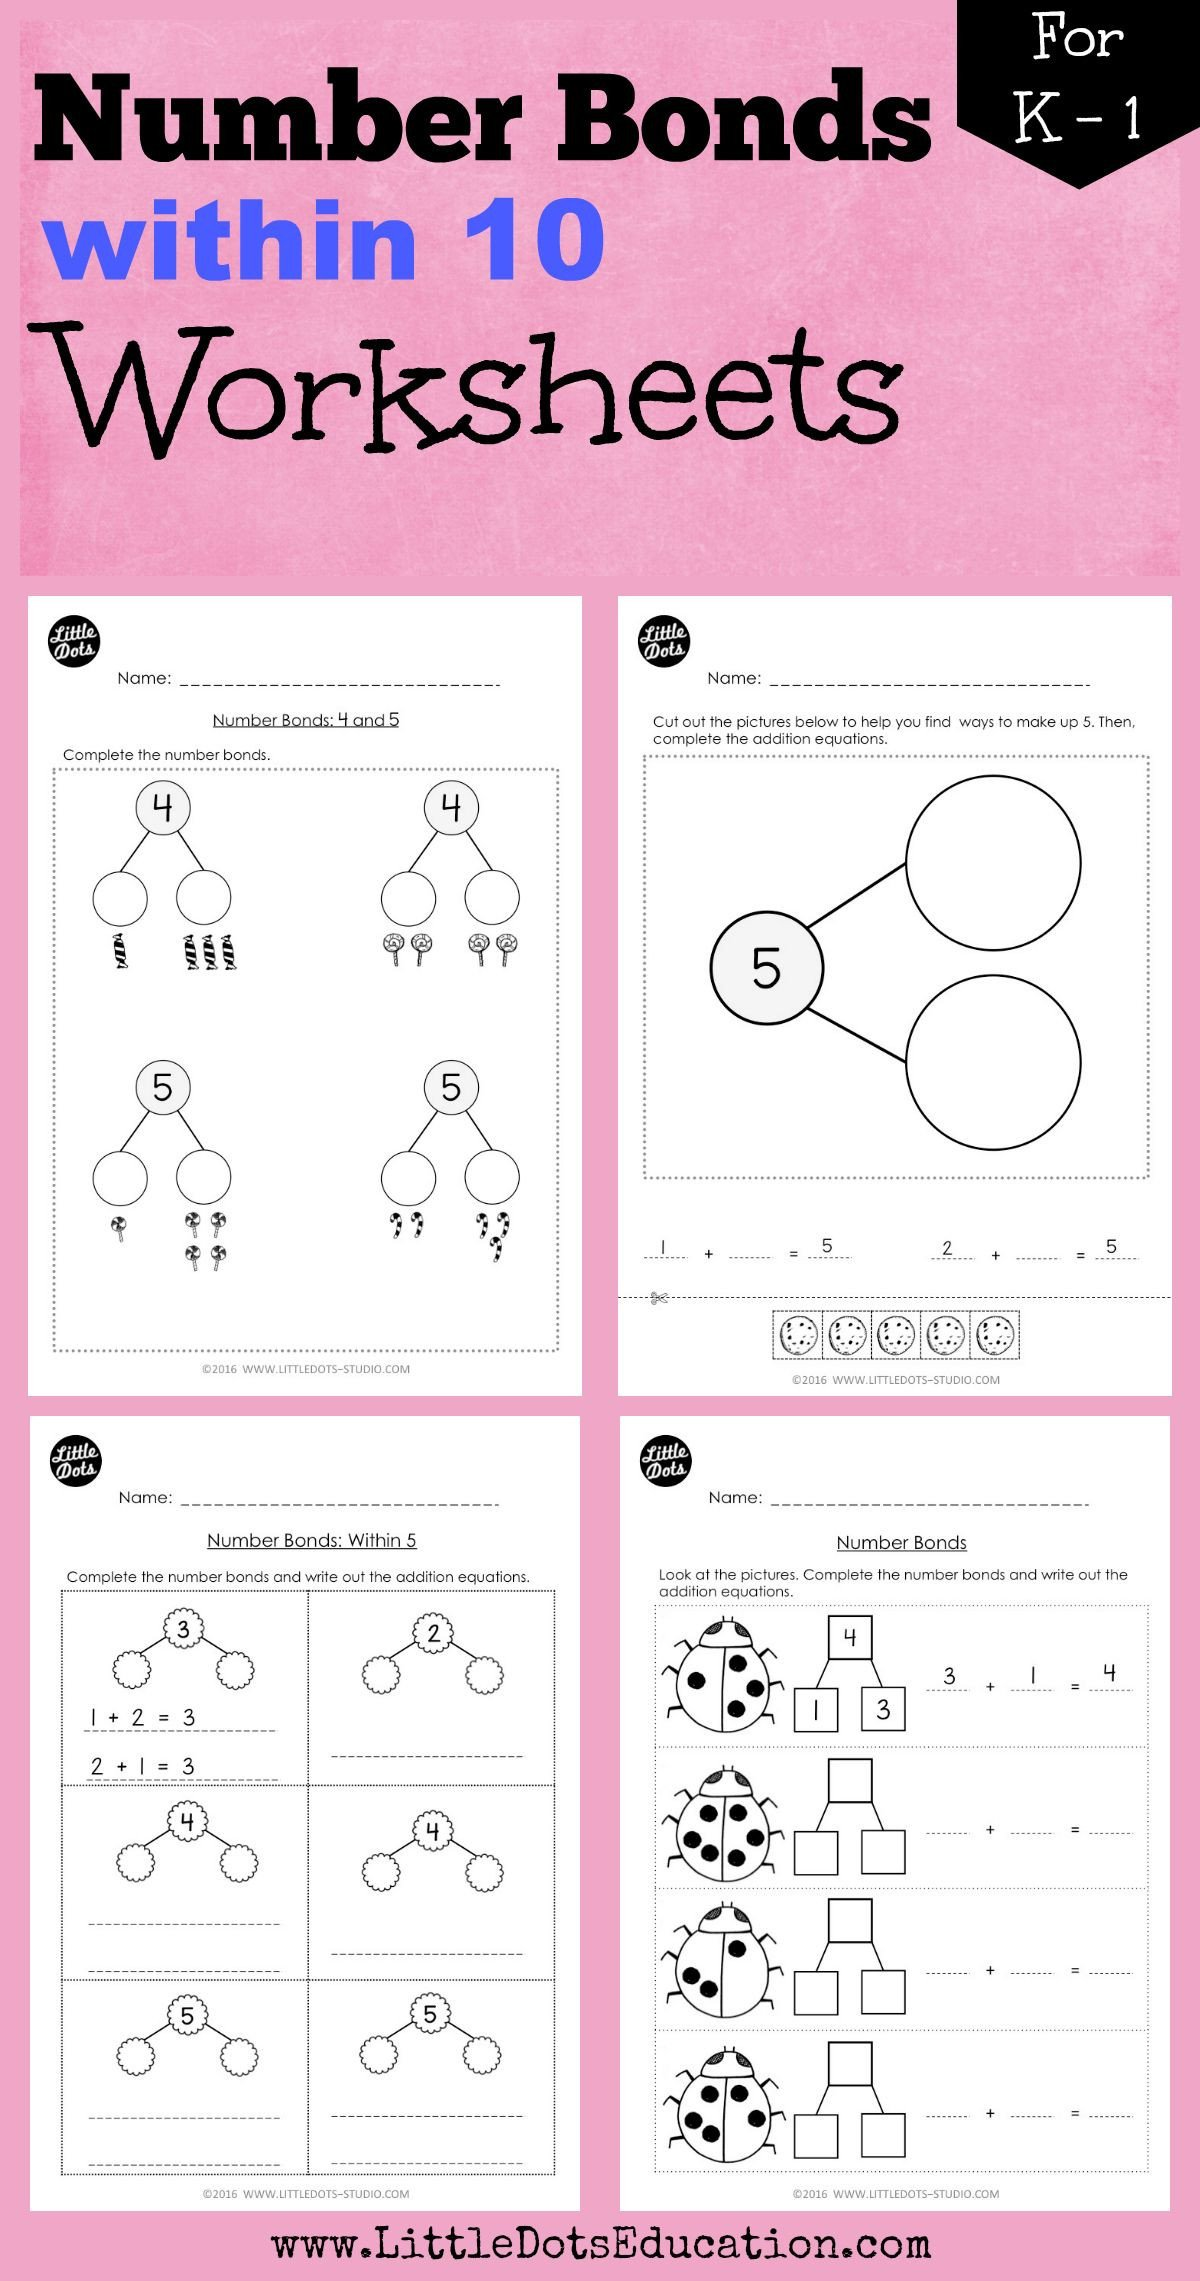 Kindergarten Number Bond Worksheet Kindergarten Math Number Bond Worksheets and Activities